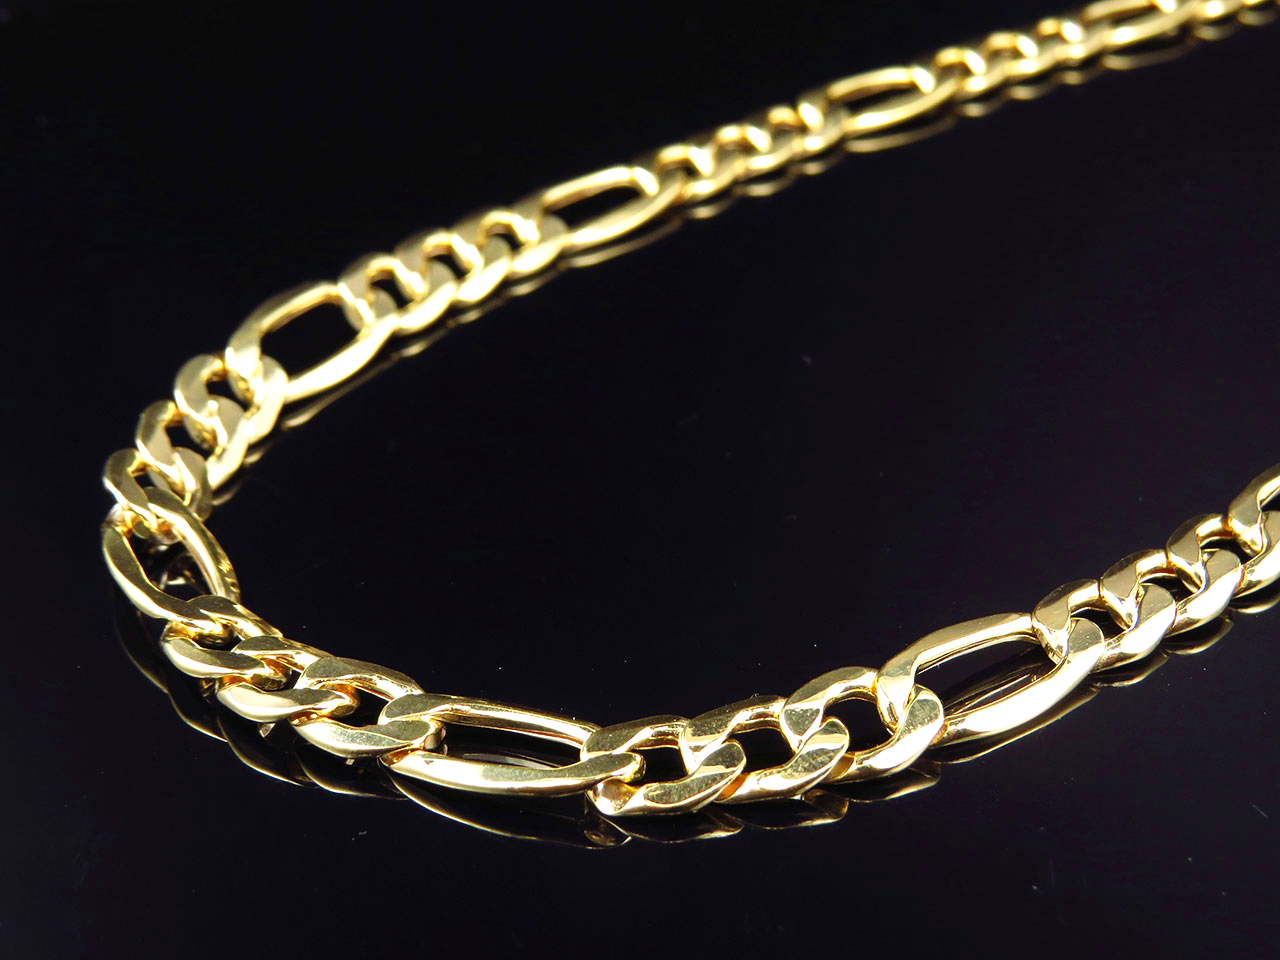 Italian Gold Chain >> Details About New Mens Genuine 10k Yellow Gold Italian Figaro Link Chain Necklace 9mm 24